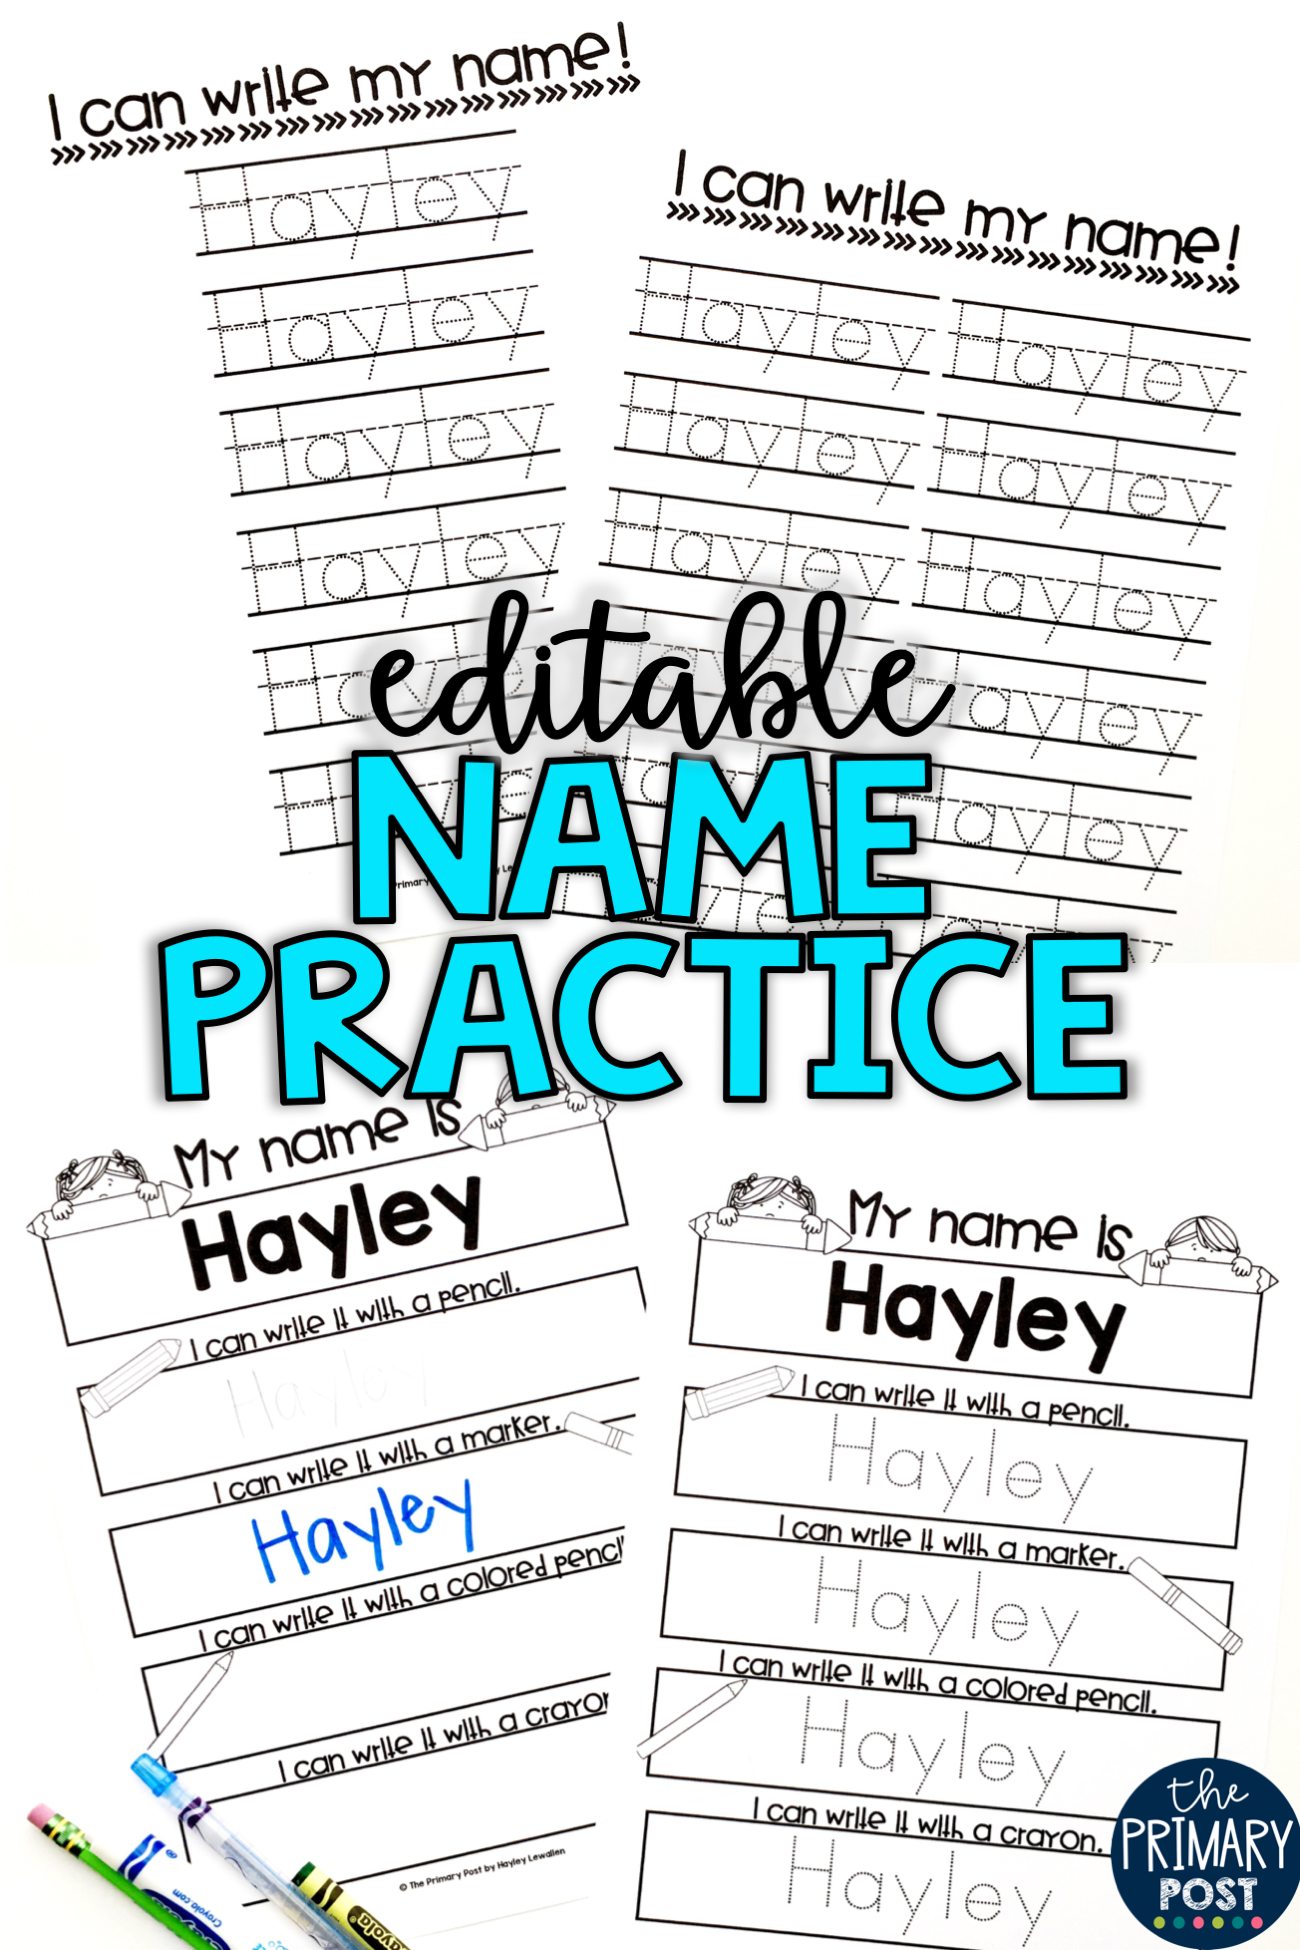 Editable Name Practice Sheets   Name Practice, Practice